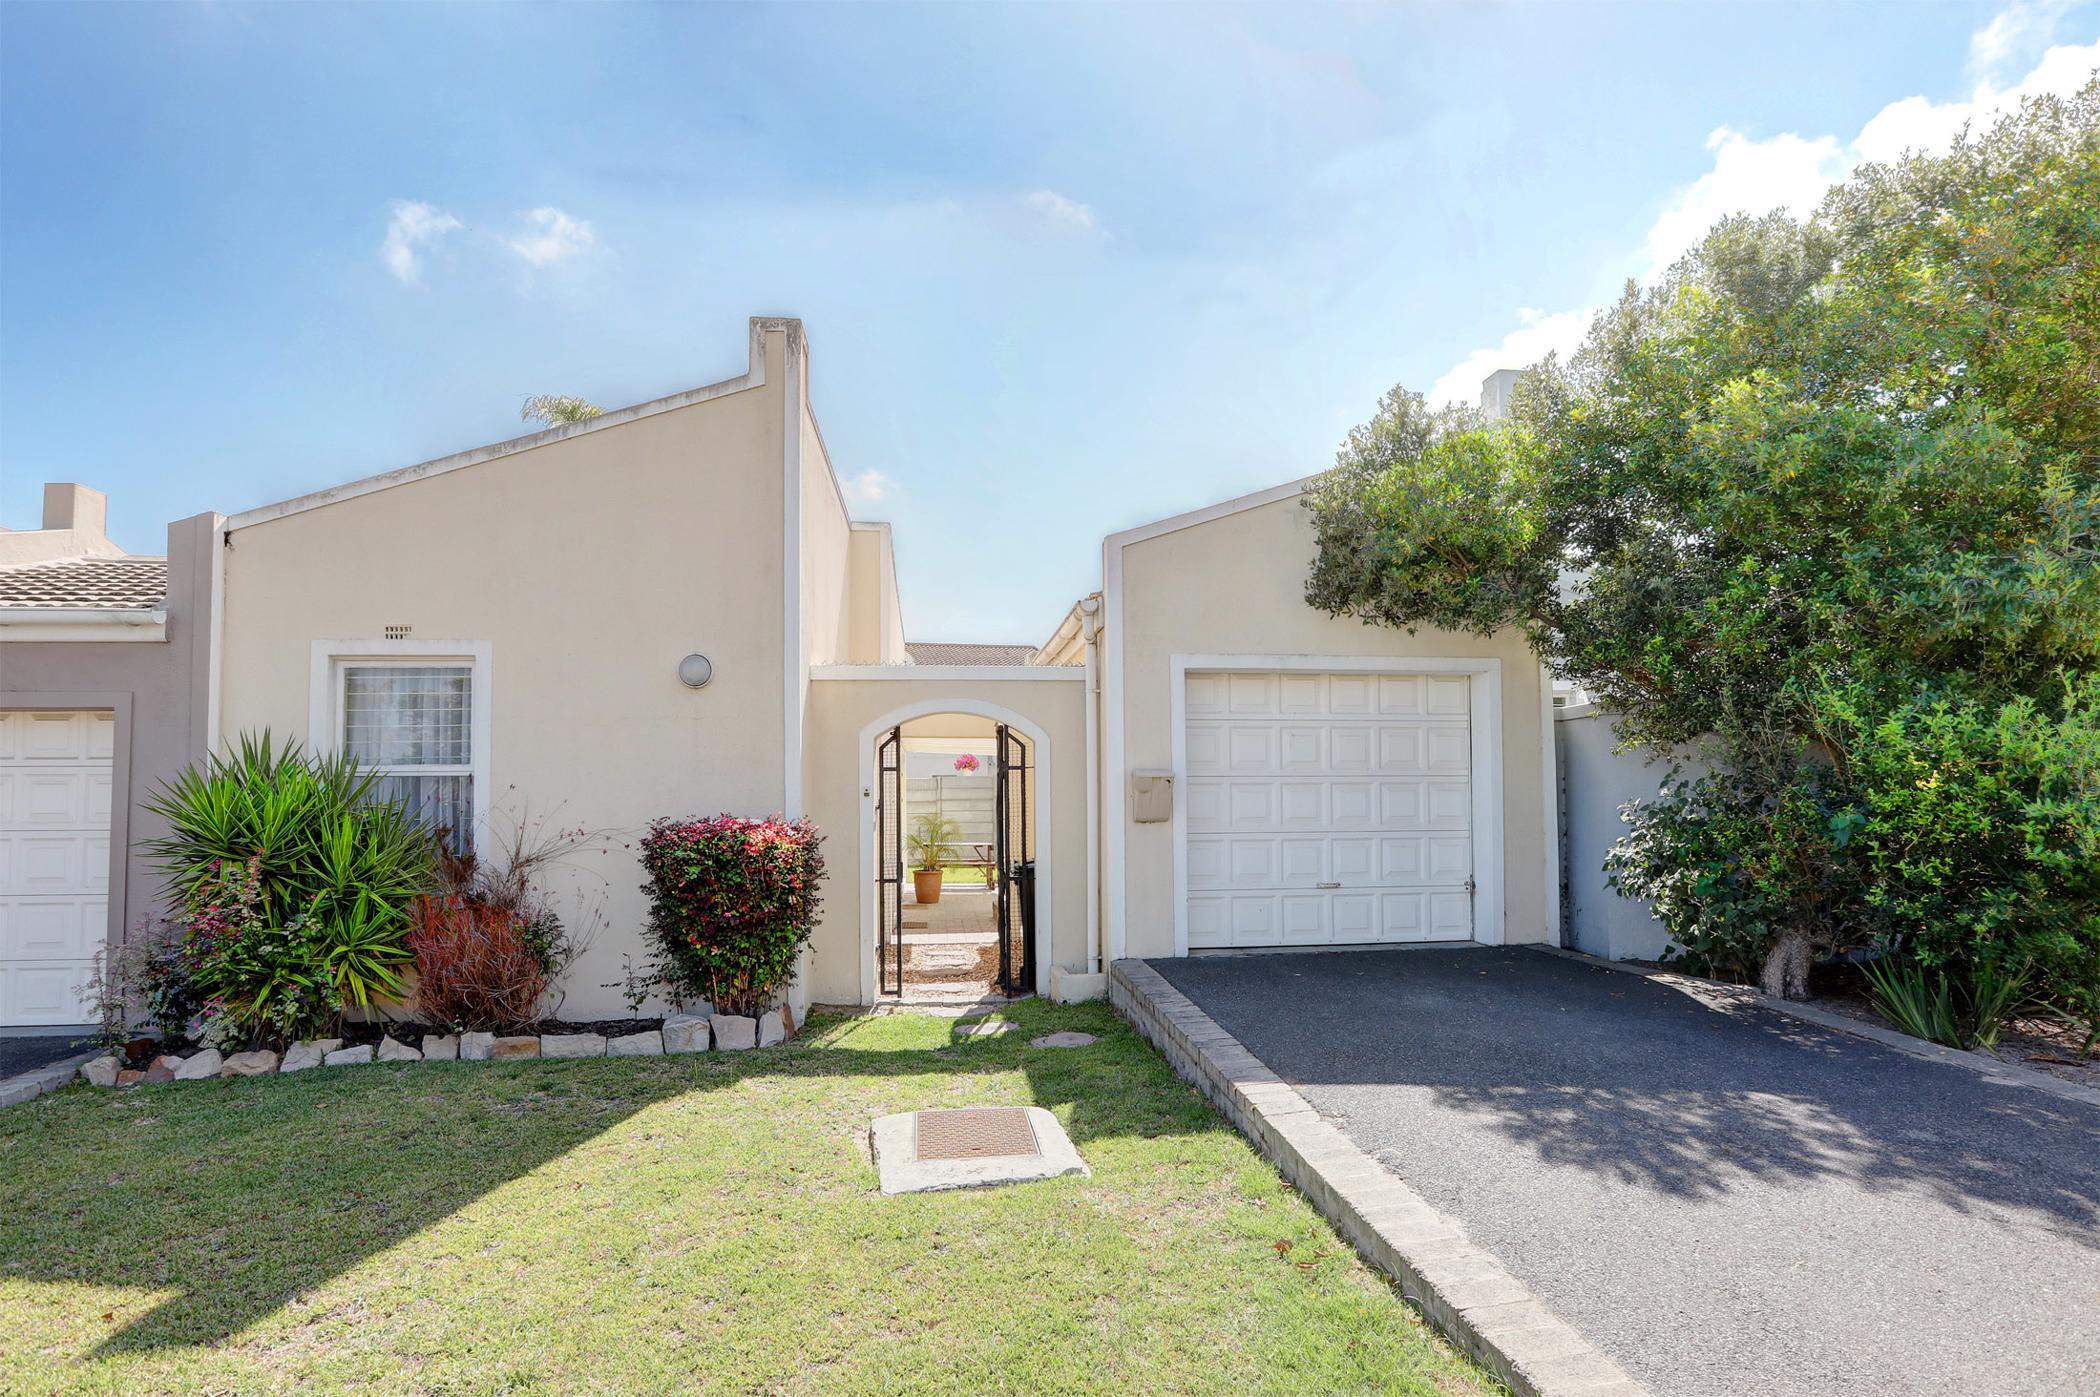 https://listing.pamgolding.co.za/images/properties/201903/1280095/H/1280095_H_1.jpg